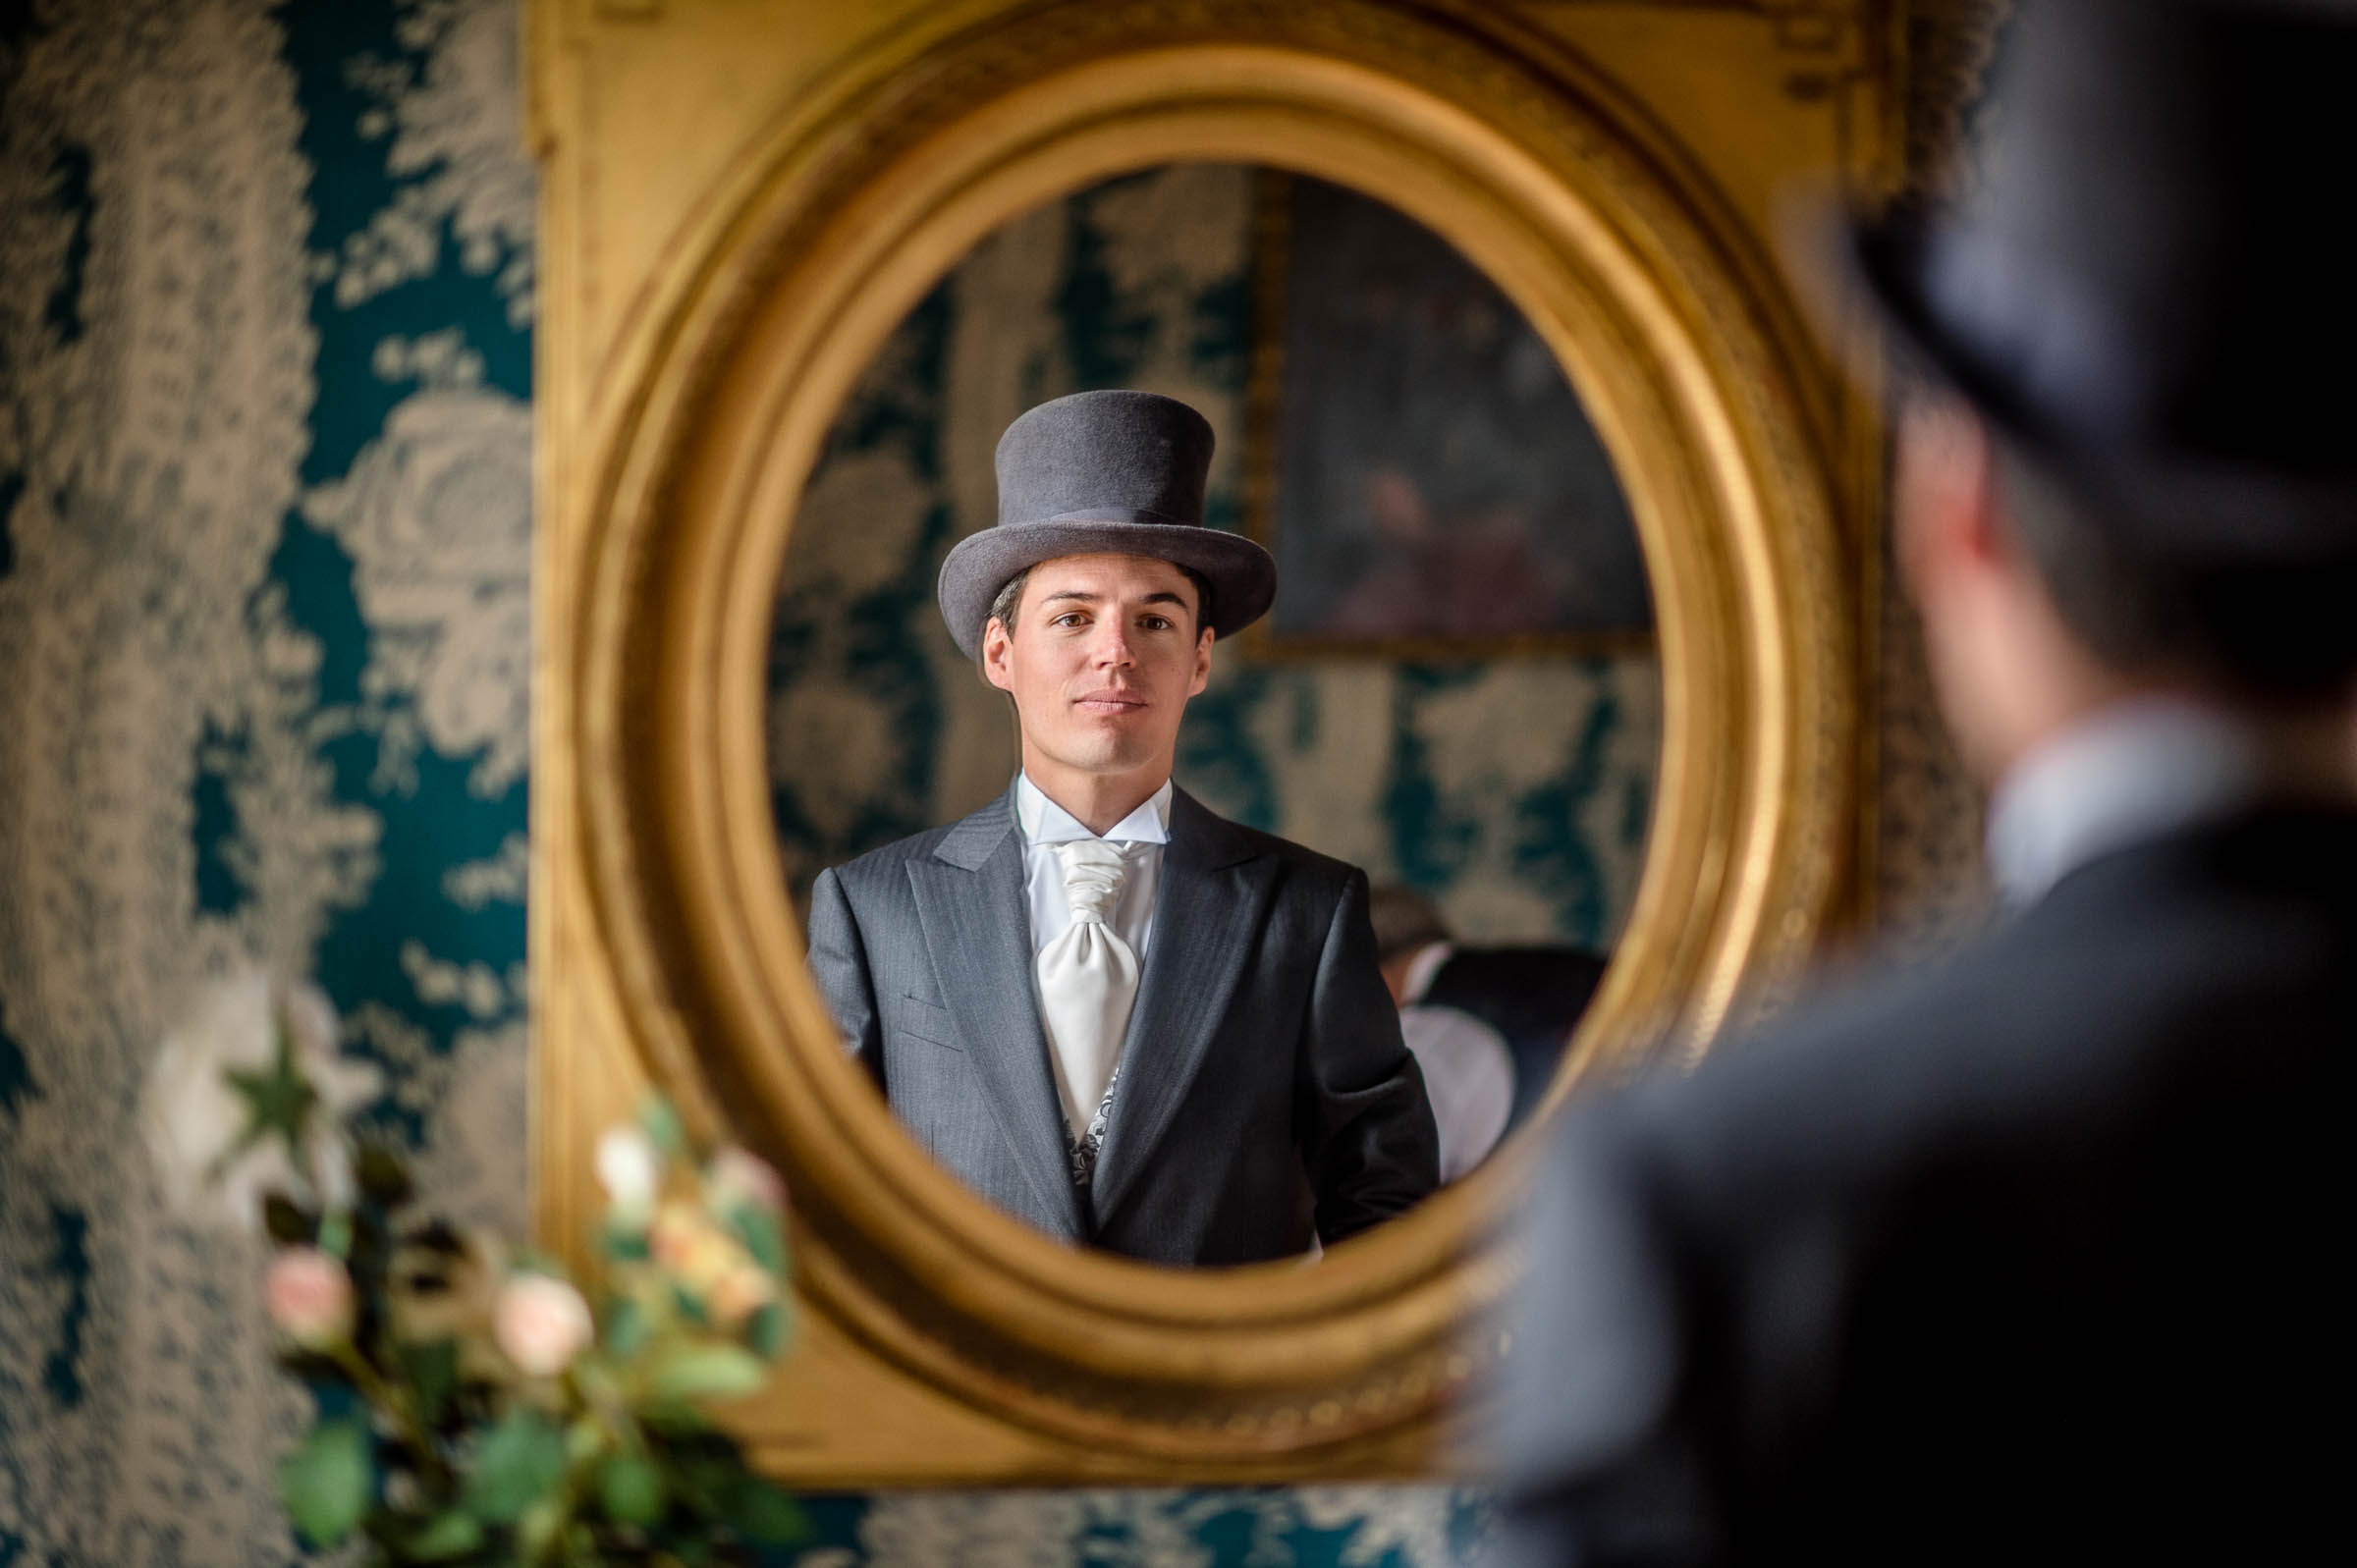 Reflection of groom in grey top hat and suit - photo by Gaelle Le Berre Photography